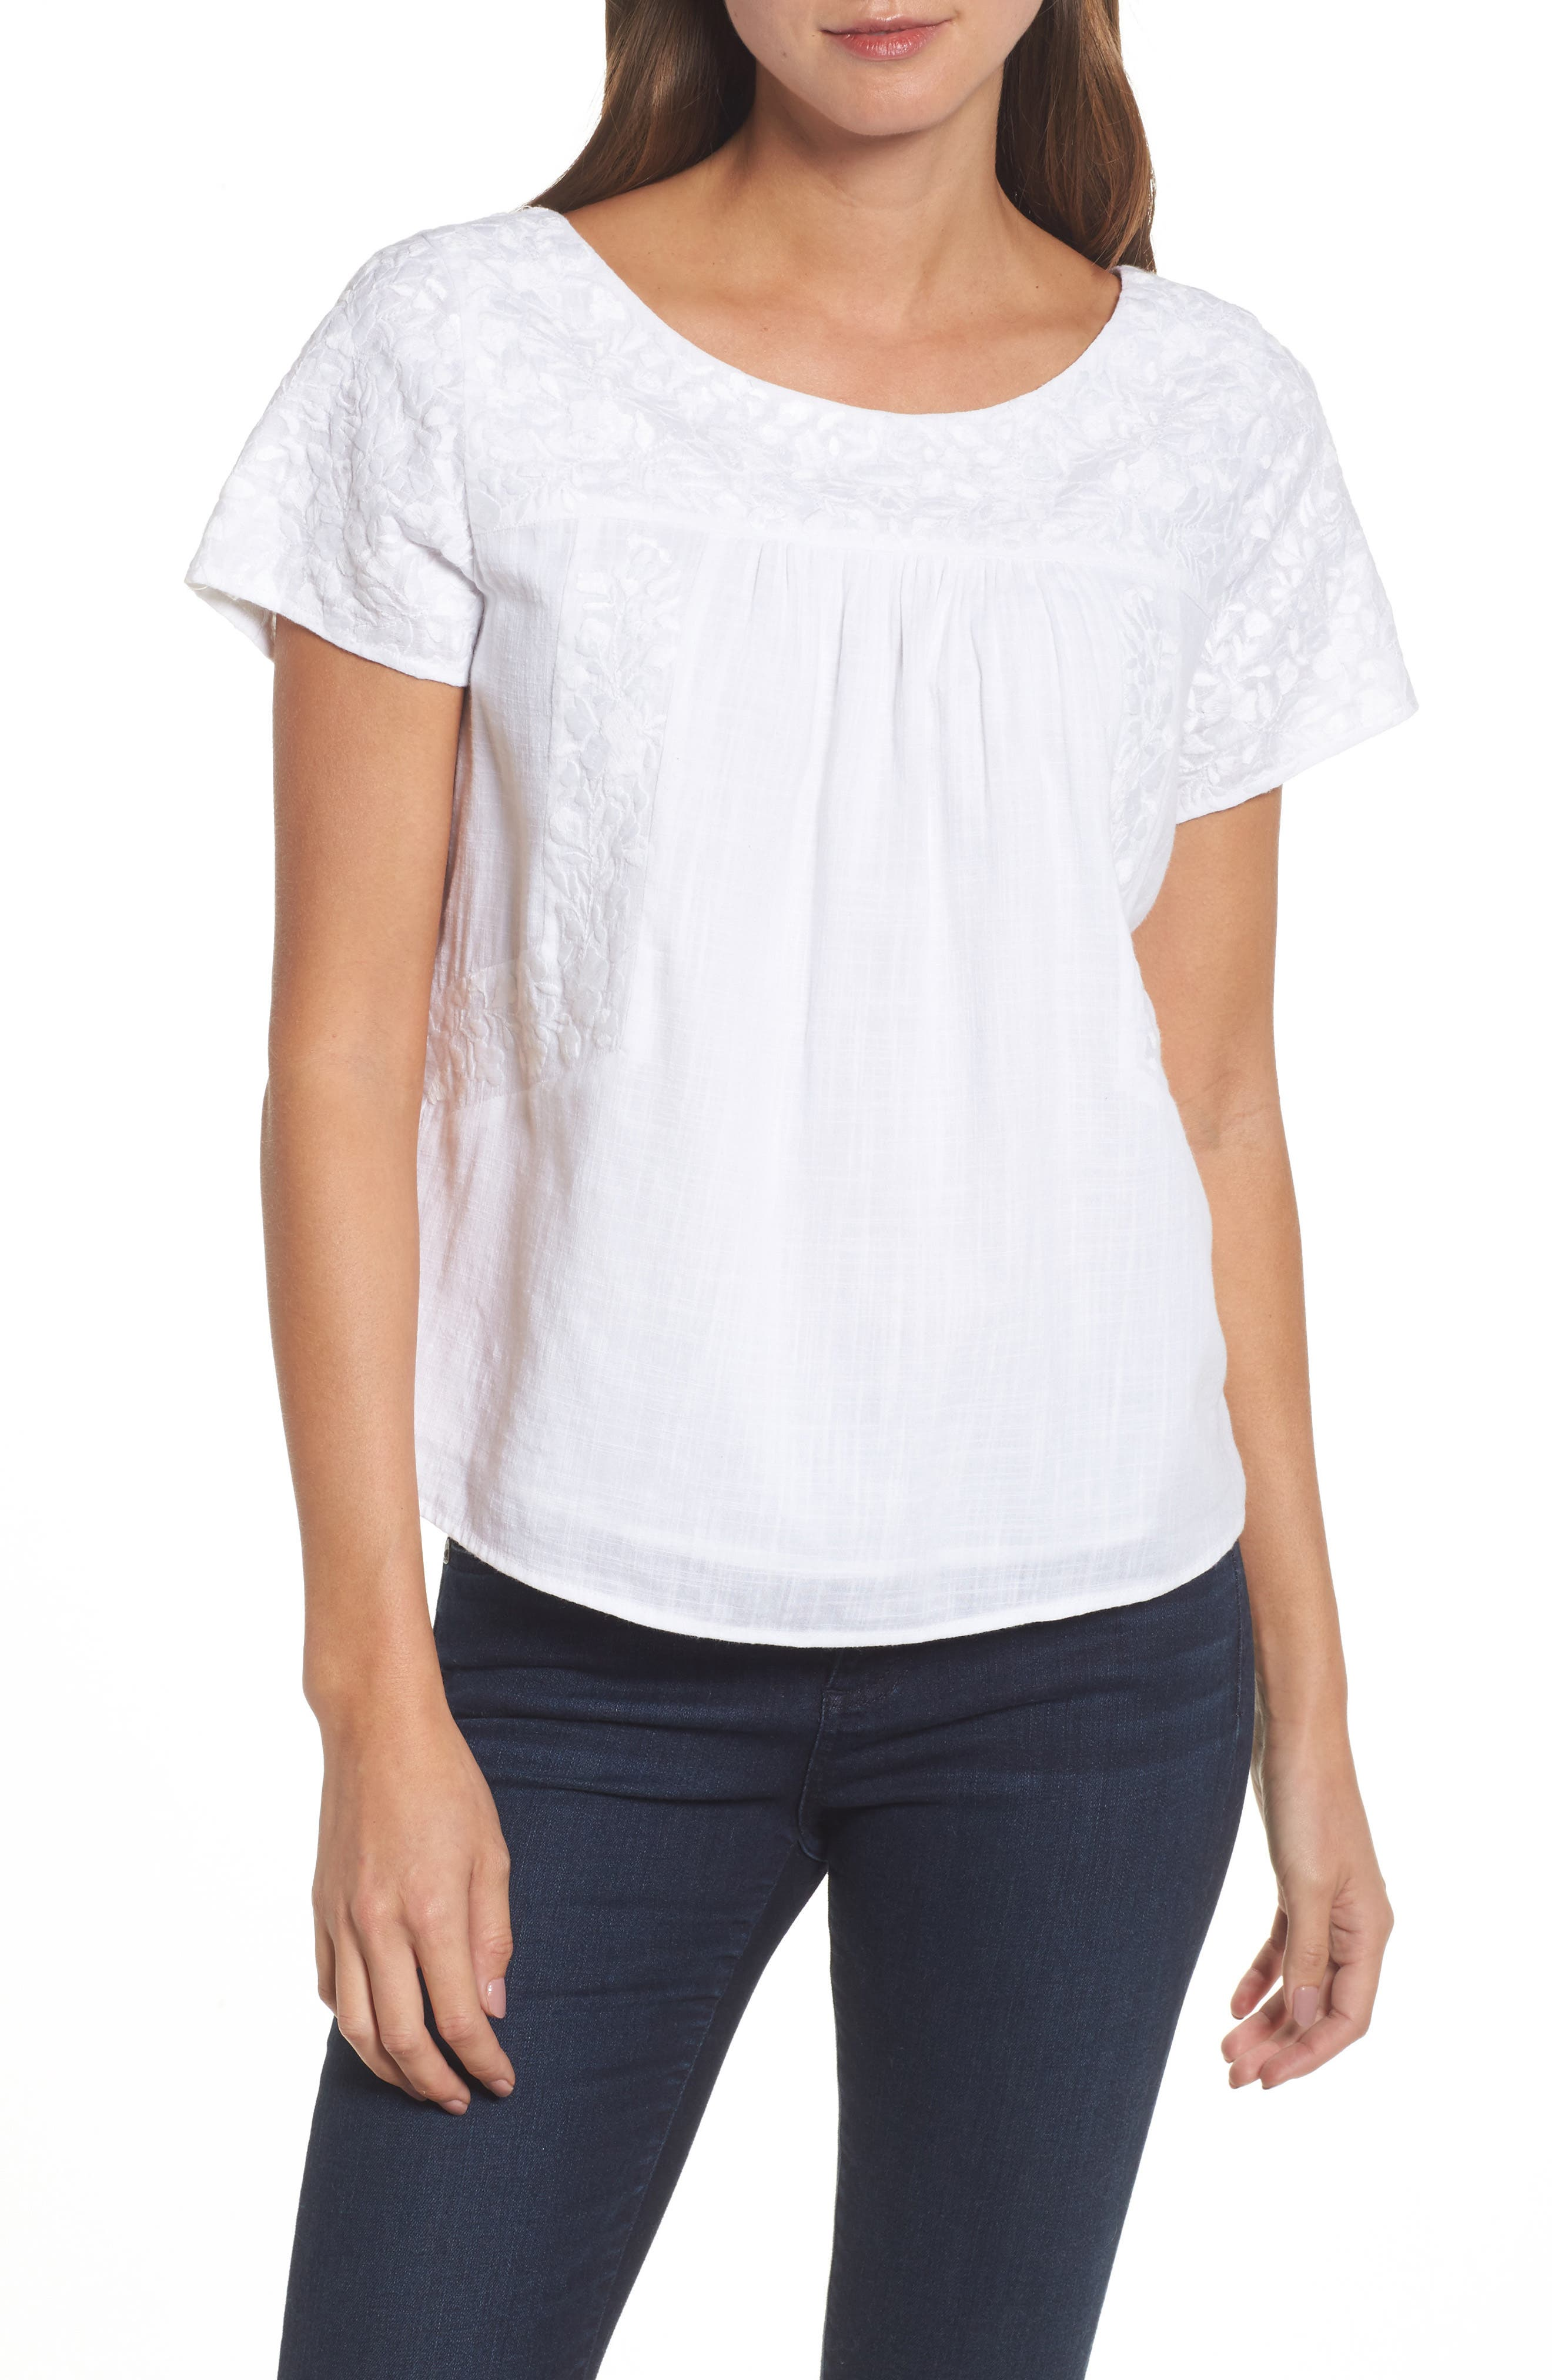 Main Image - vineyard vines Monstera Linear Embroidered Top